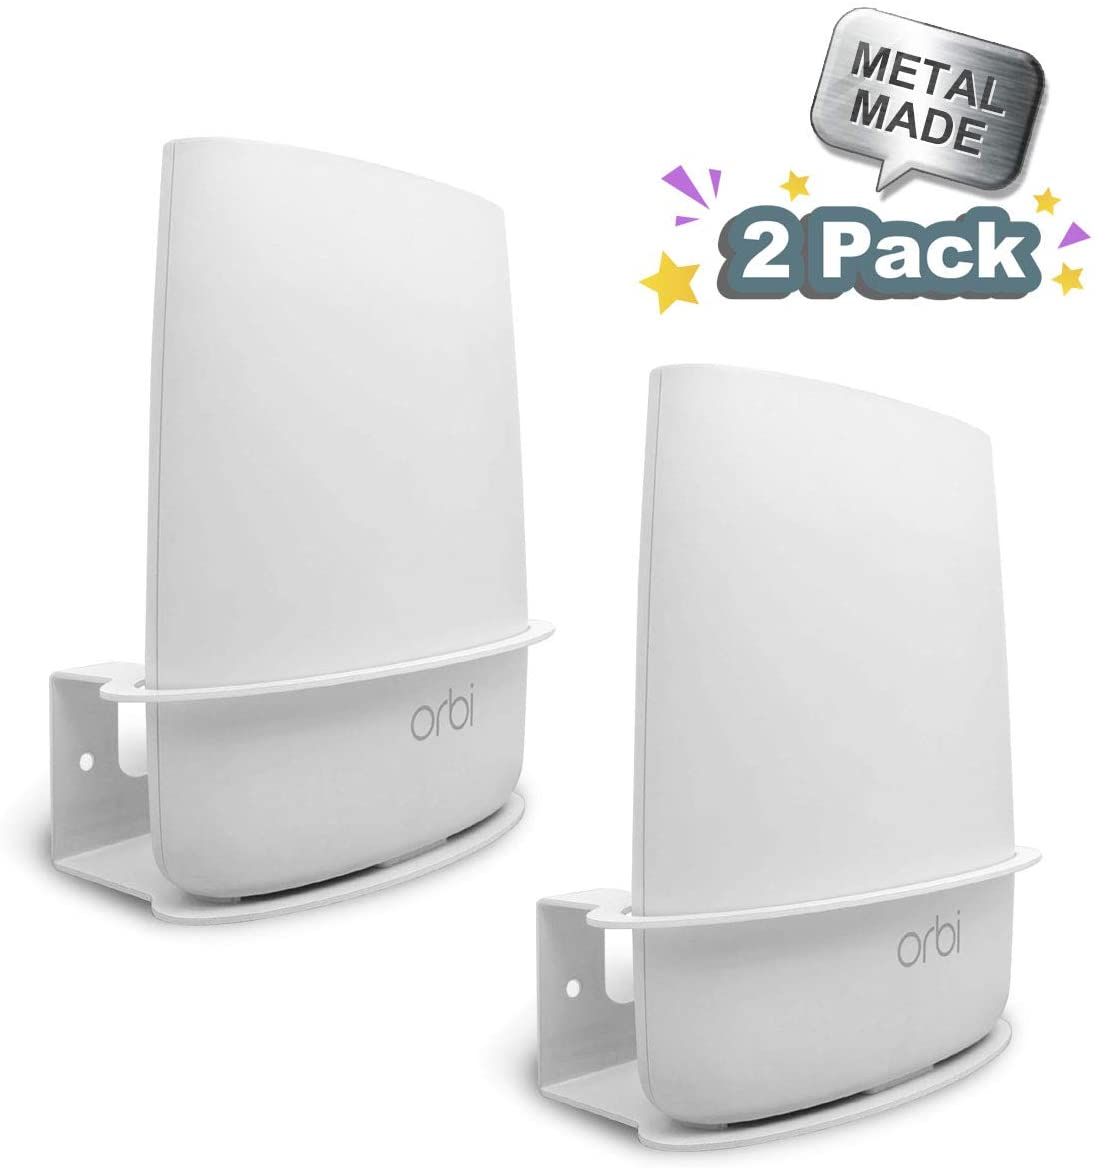 ALLICAVER Compatible Wall Mount Netgear Orbi, Sturdy Metal Made Mount Stand Holder Compatible Orbi WiFi Router RBR20, RBS20, RBK20, RBK23 Tri Band Home WiFi Router. (Mini orbi - 2pcs)